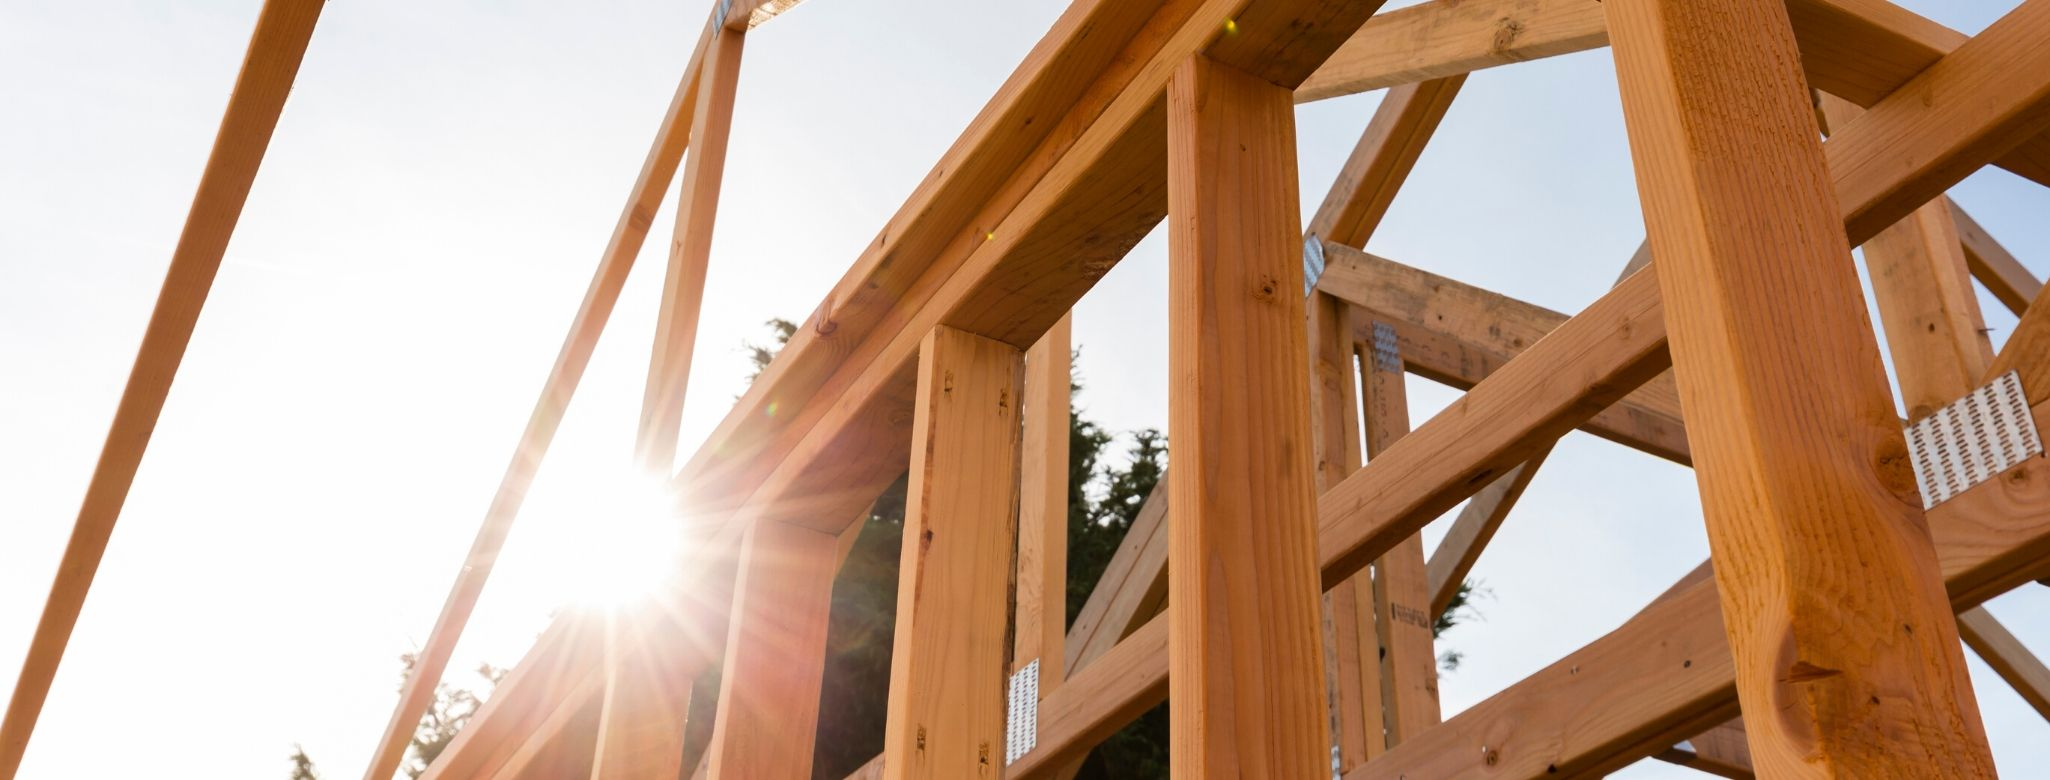 New Construction Sales are Sizzling – Don't Get Burned Buying without a Realtor.